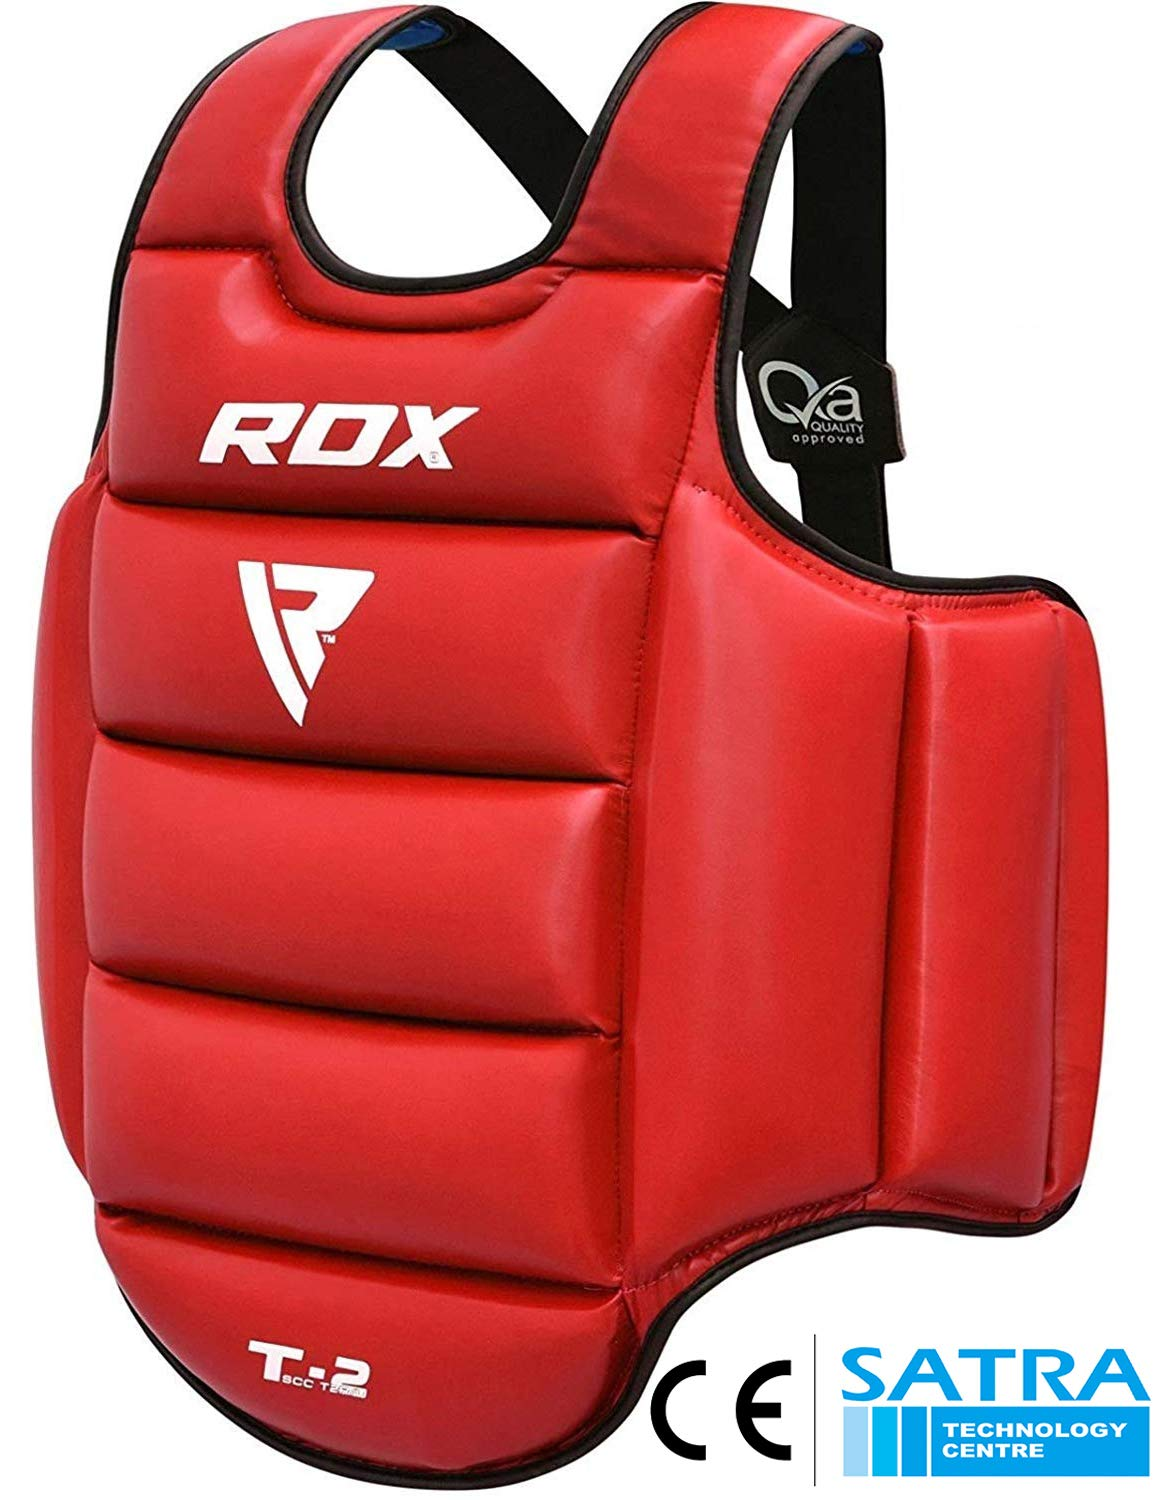 Taekwondo Chest Guard Karate MMA Body Protector Sparring Gear-New /& REVERSIBLE